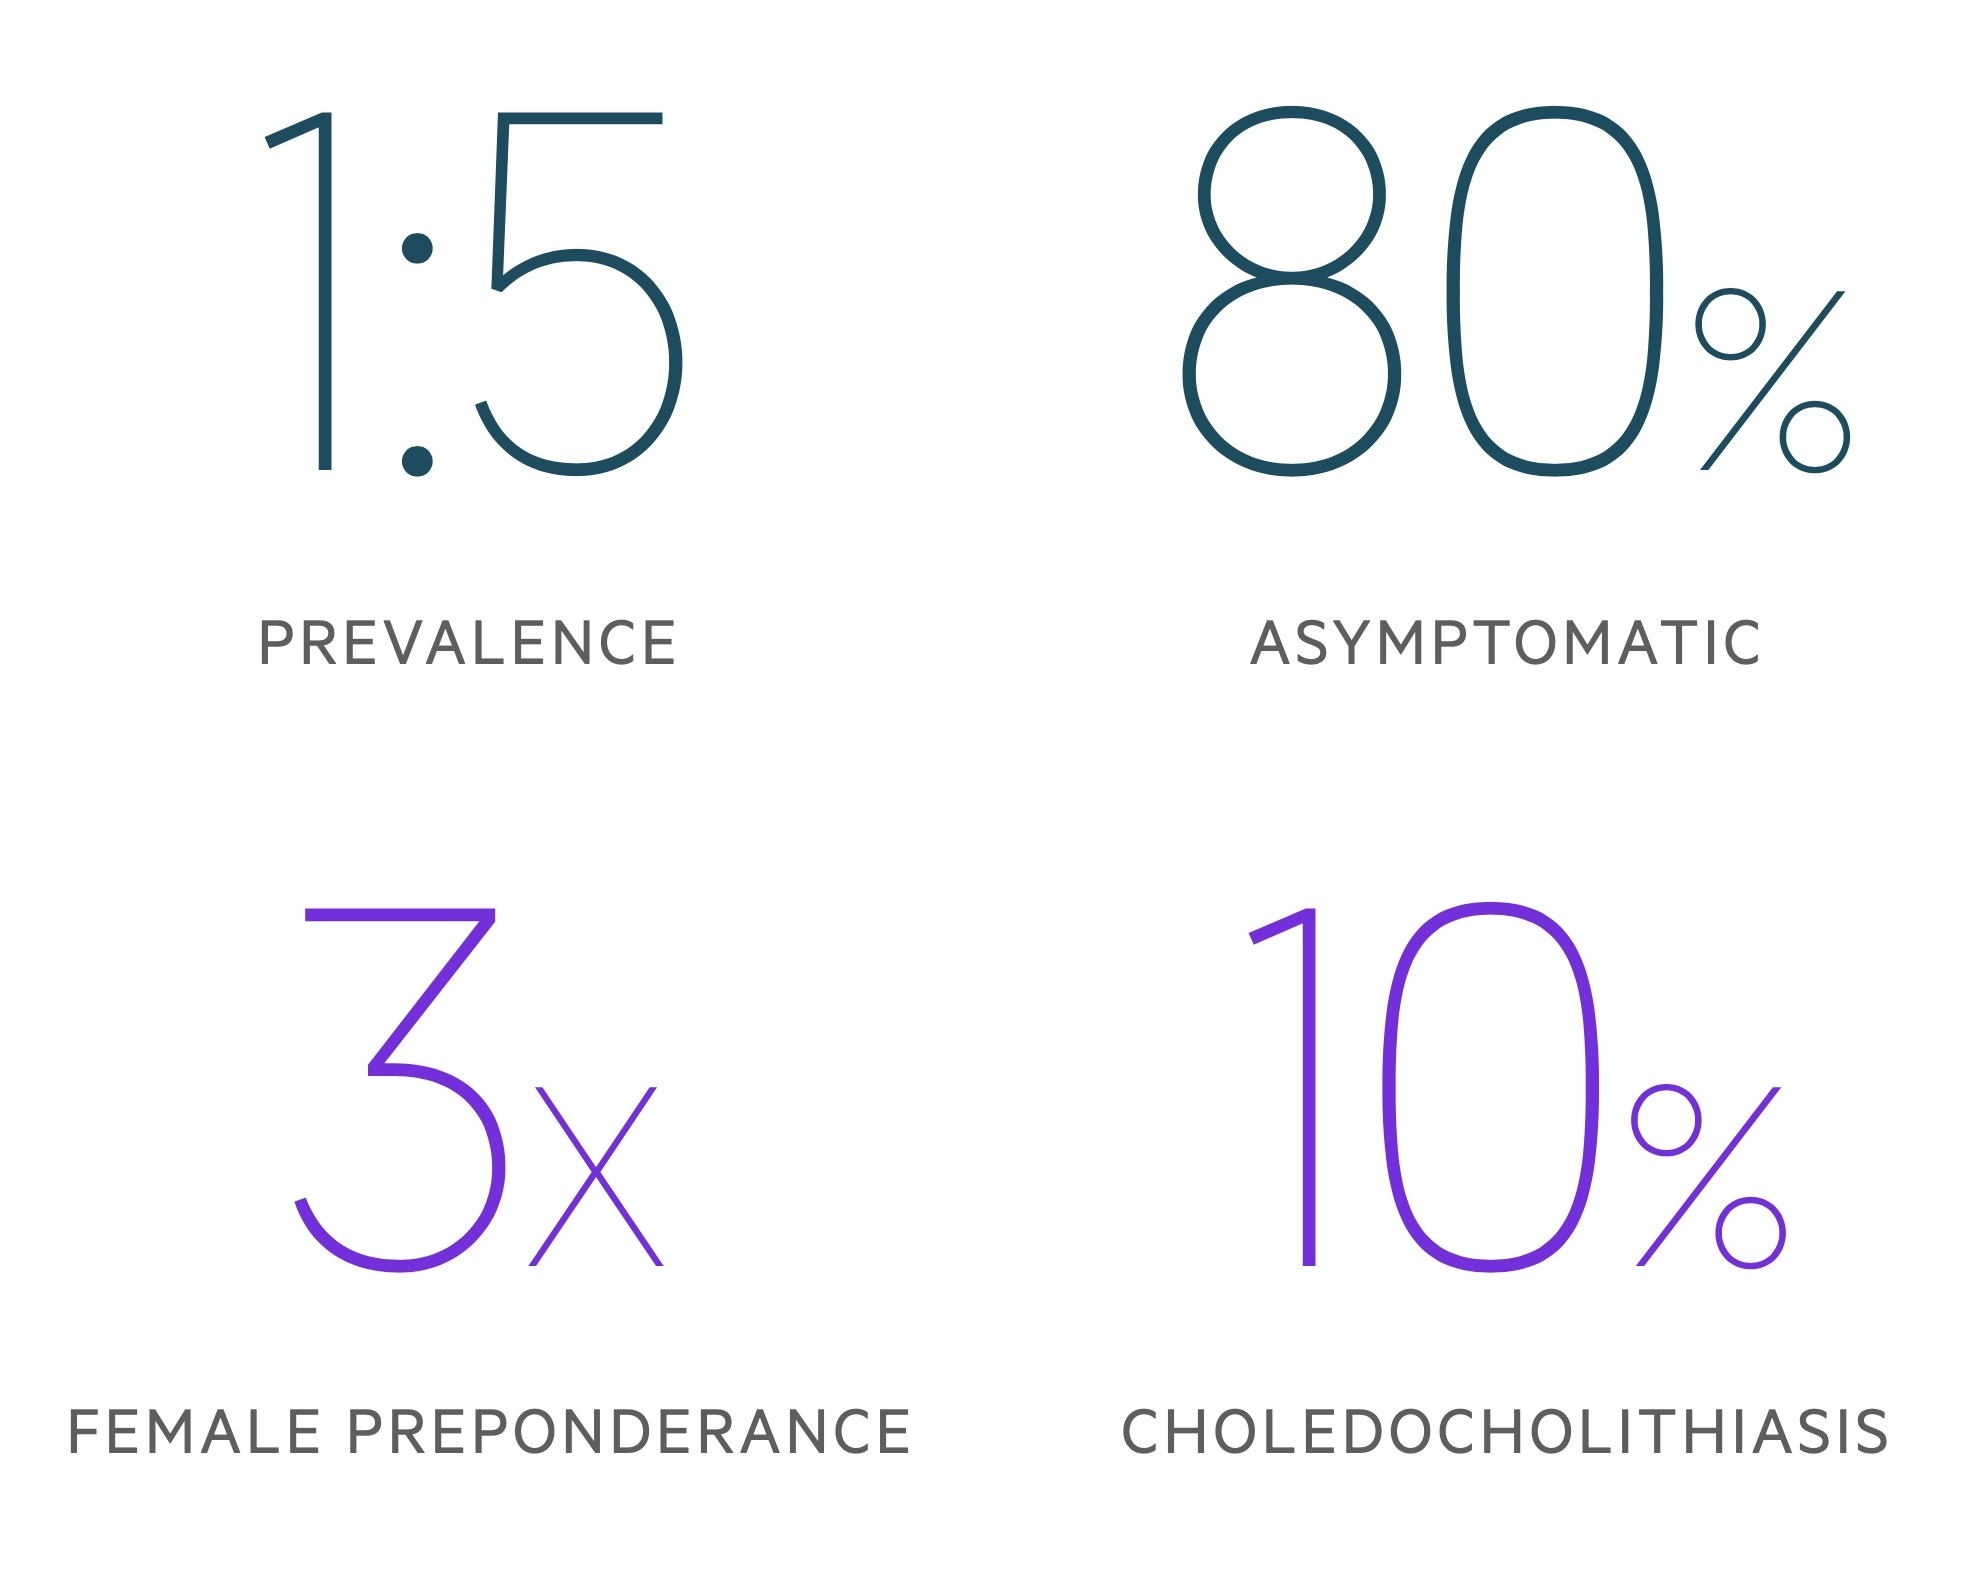 Cholelithiasis facts and figures stats